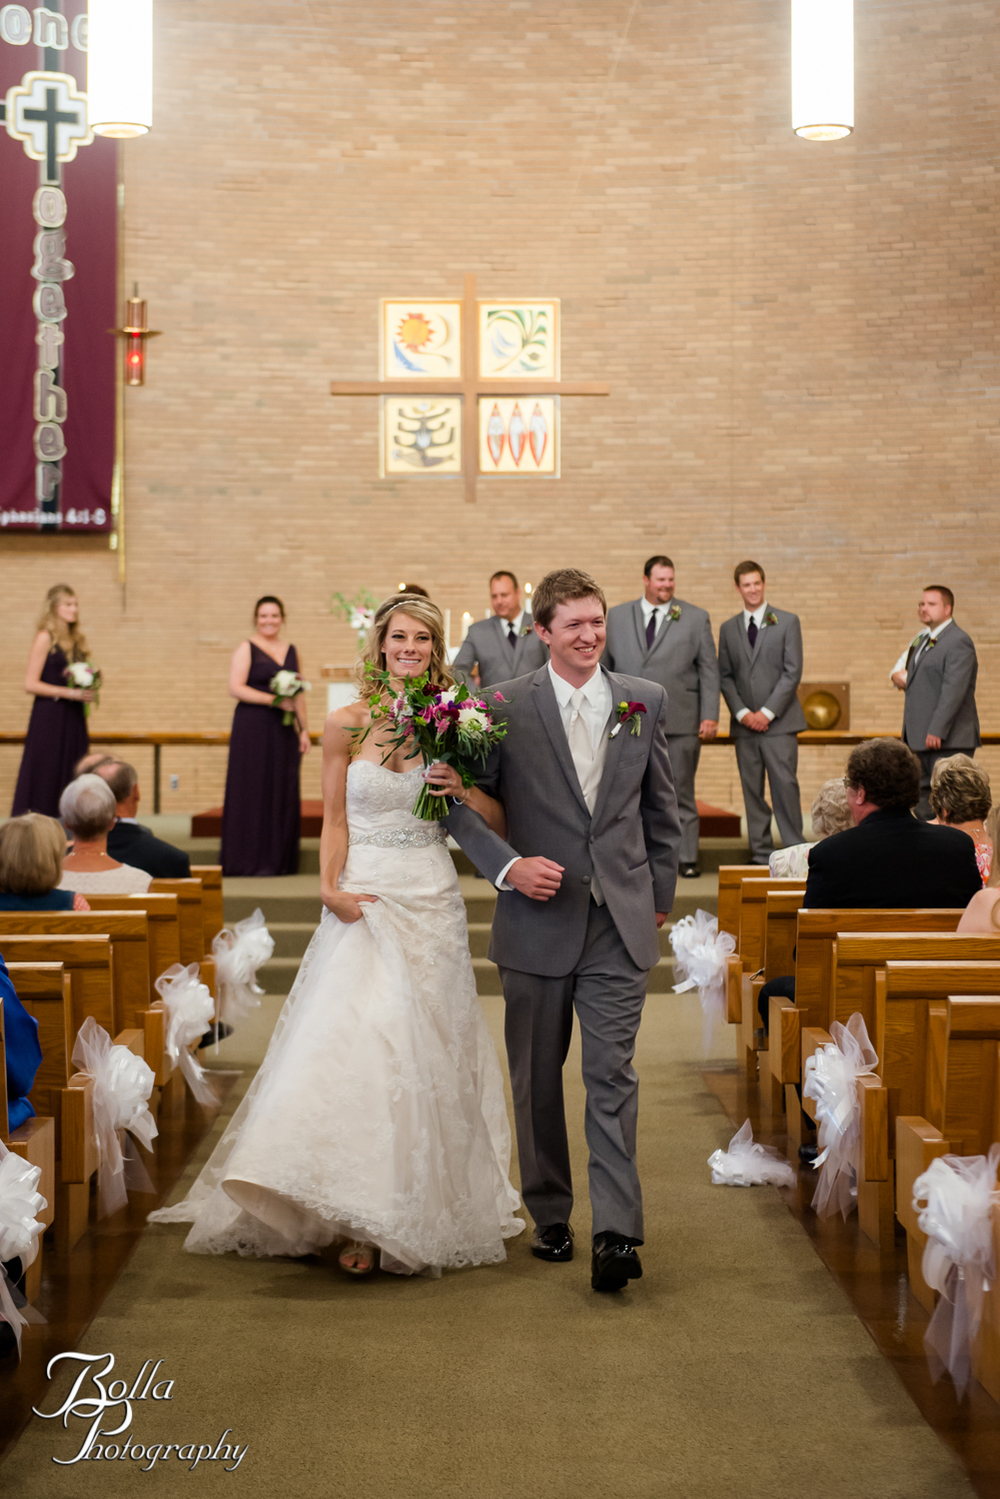 Bolla_Photography_St_Louis_wedding_photographer-0232.jpg